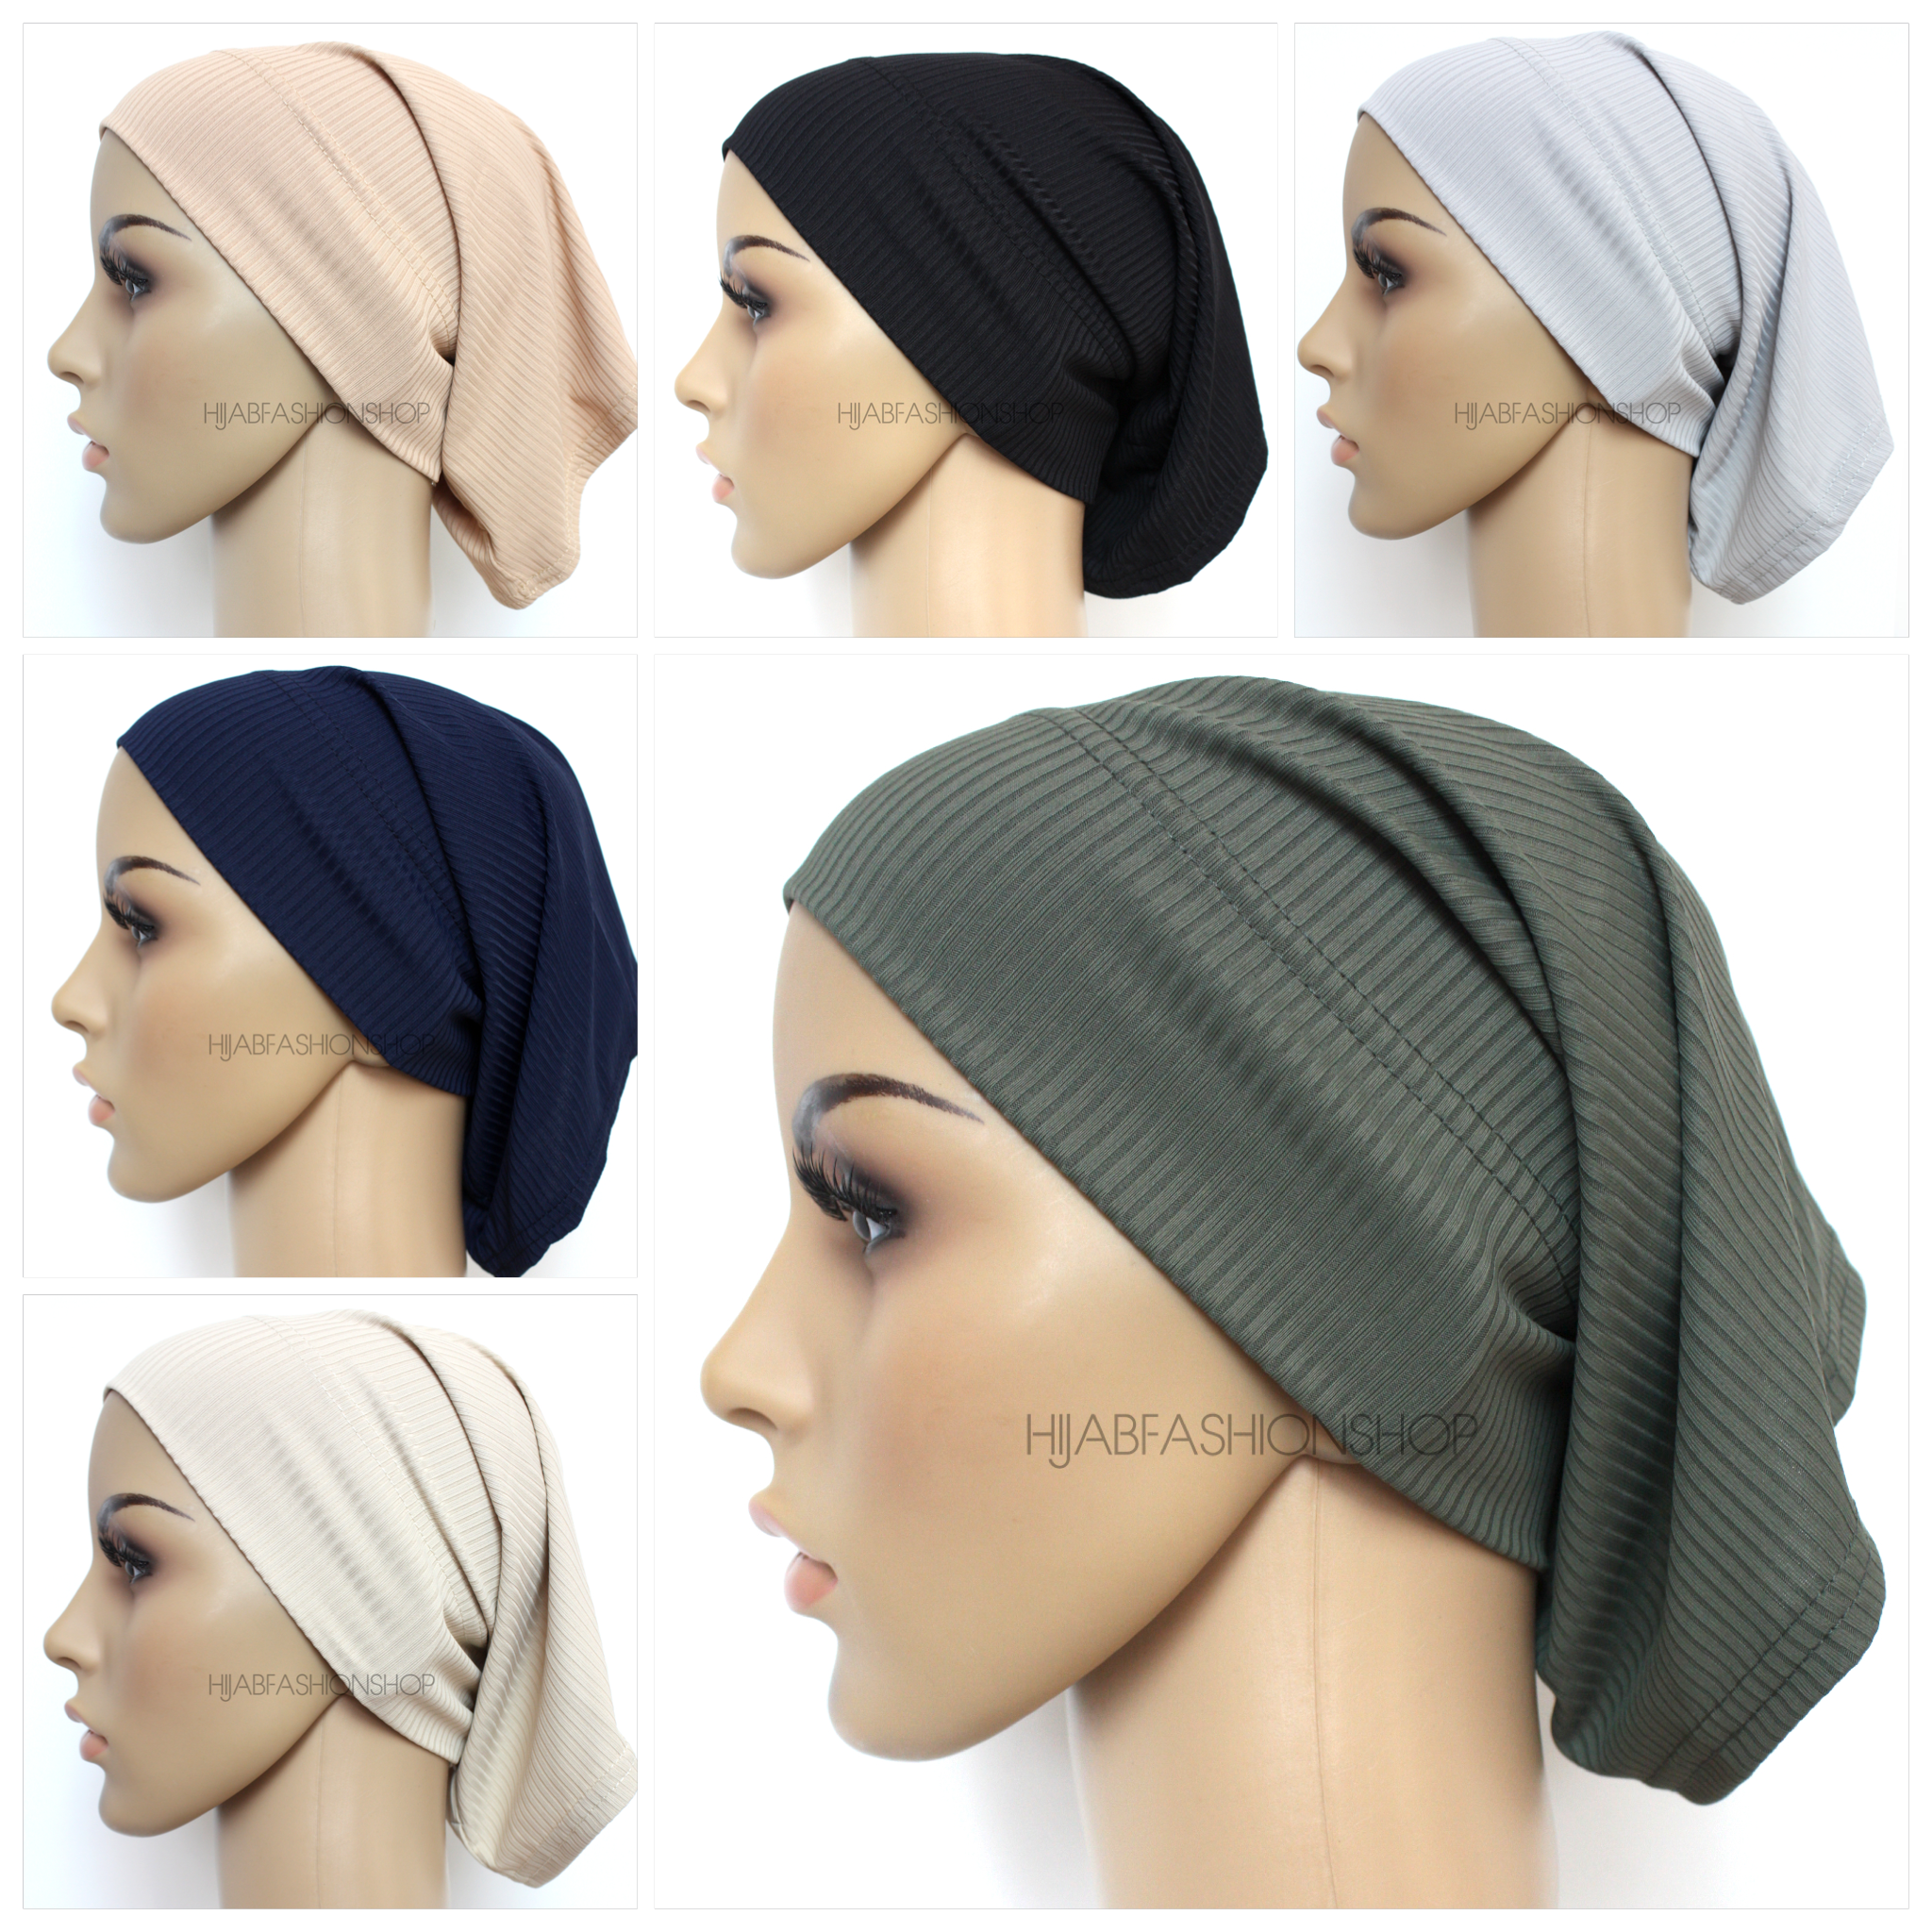 6 ribbed tube underscarves